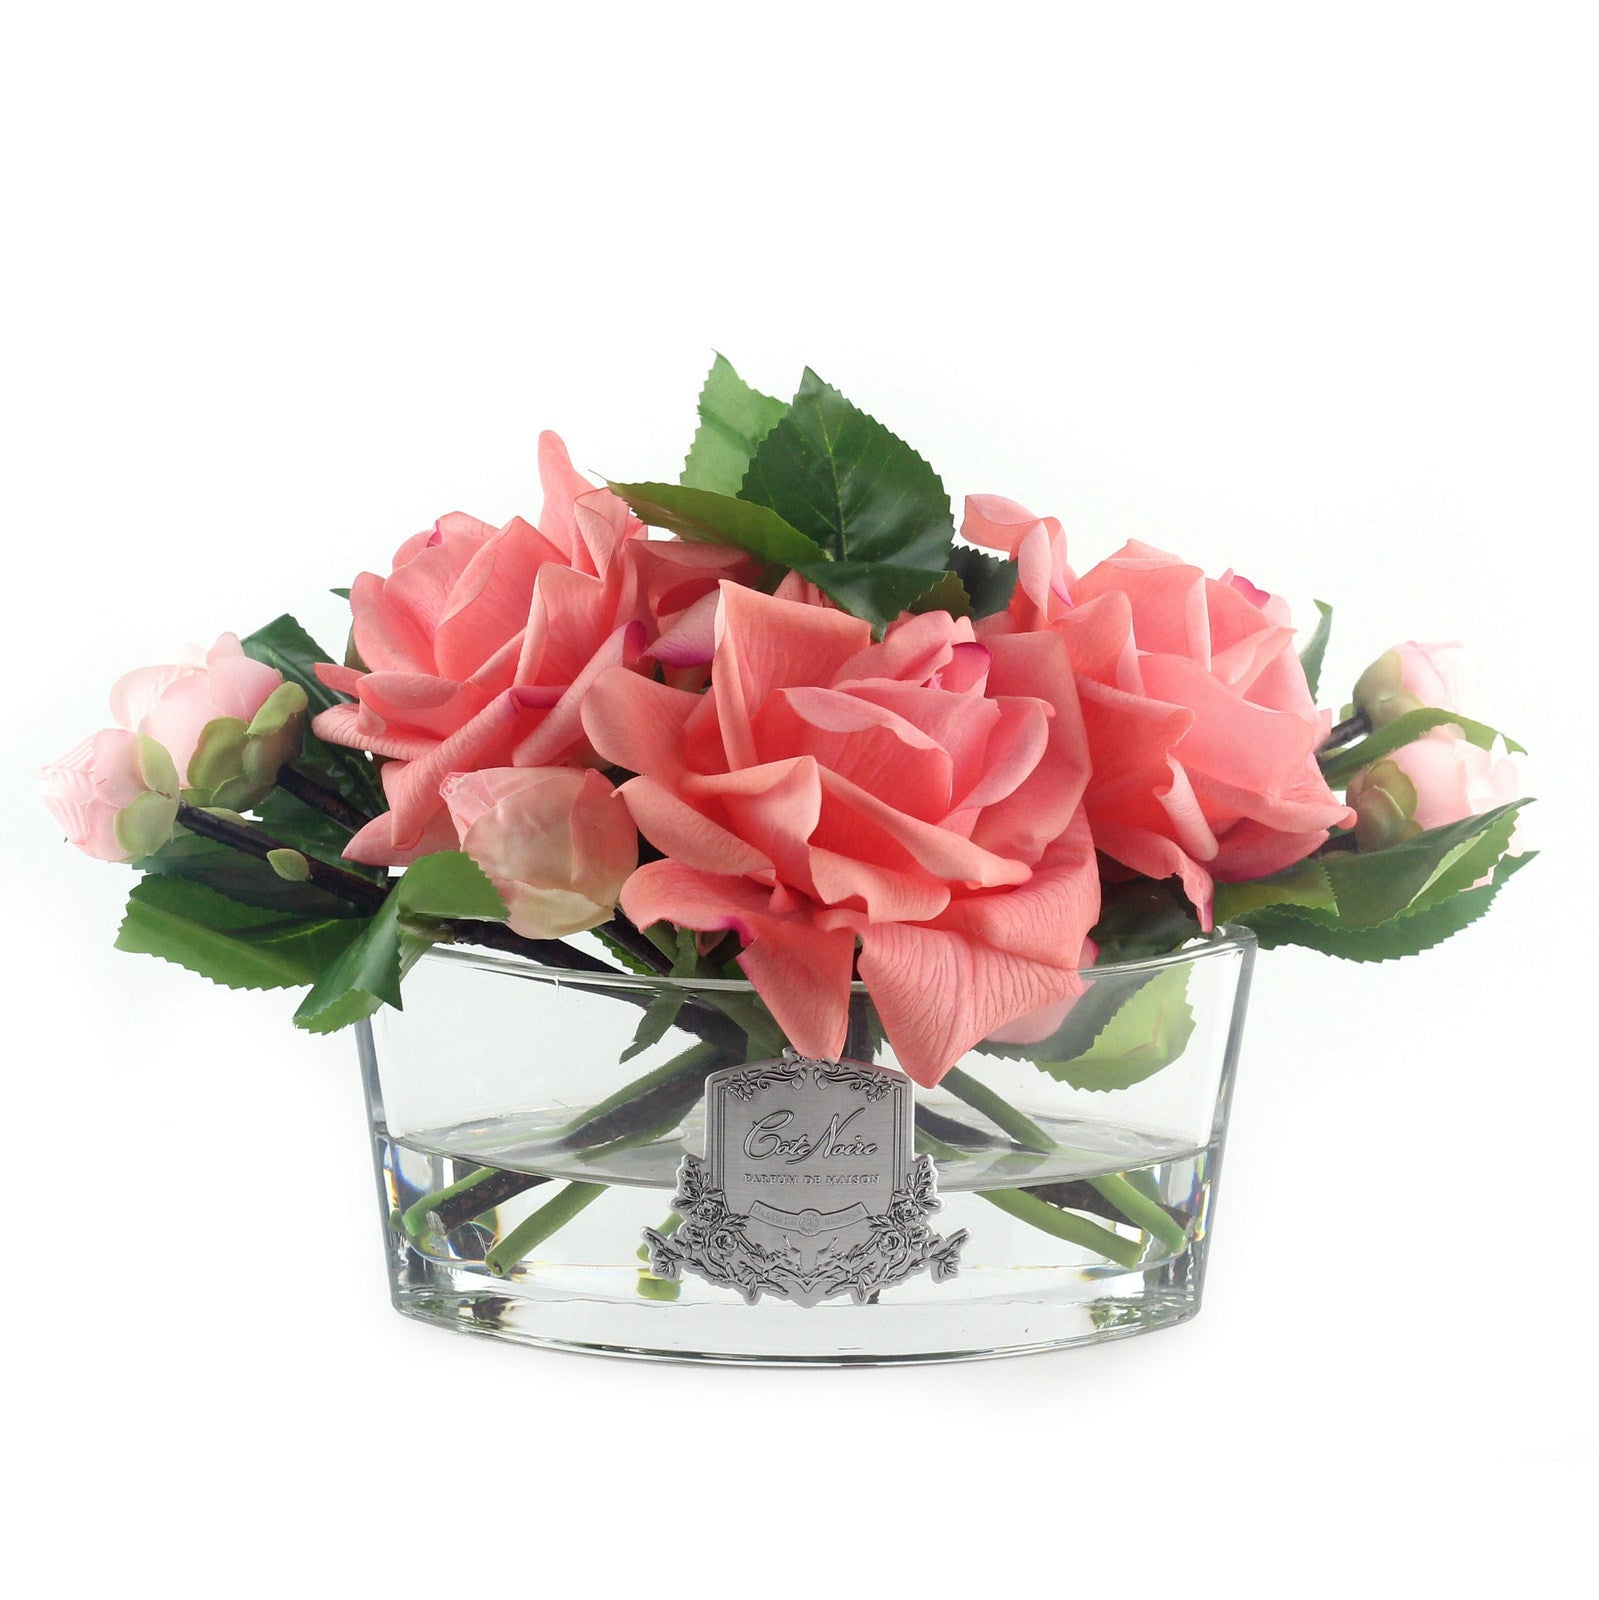 Cote Noire: Rose Bouquet Fragrance Diffuser - Peach